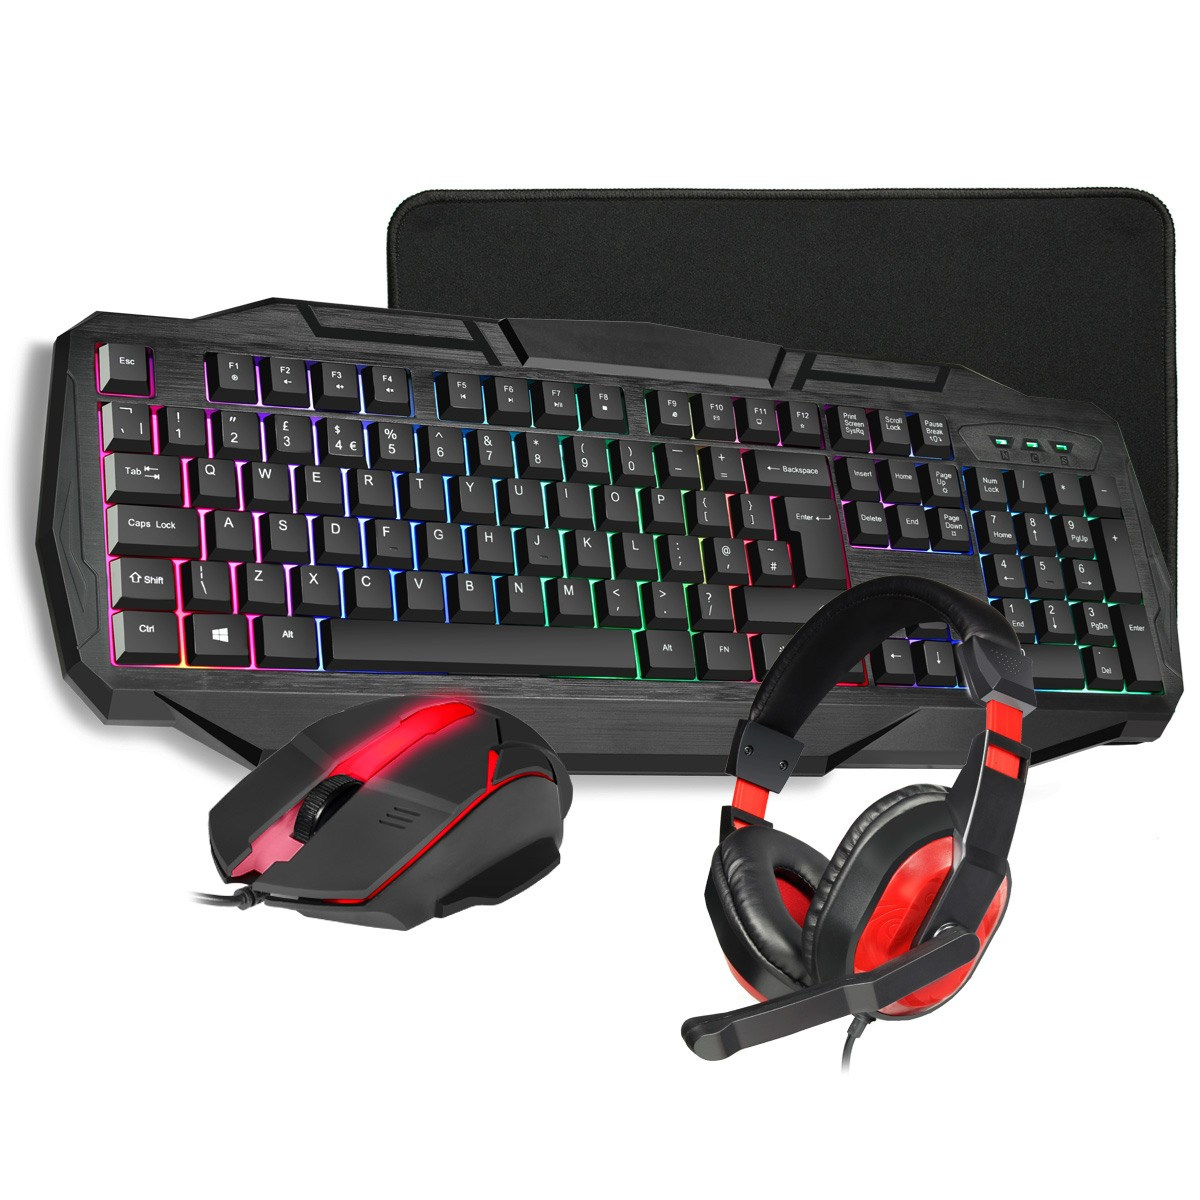 CiT Builder 4-in-1 Kit with Keyboard, Mouse, Mouse Mat and Headset